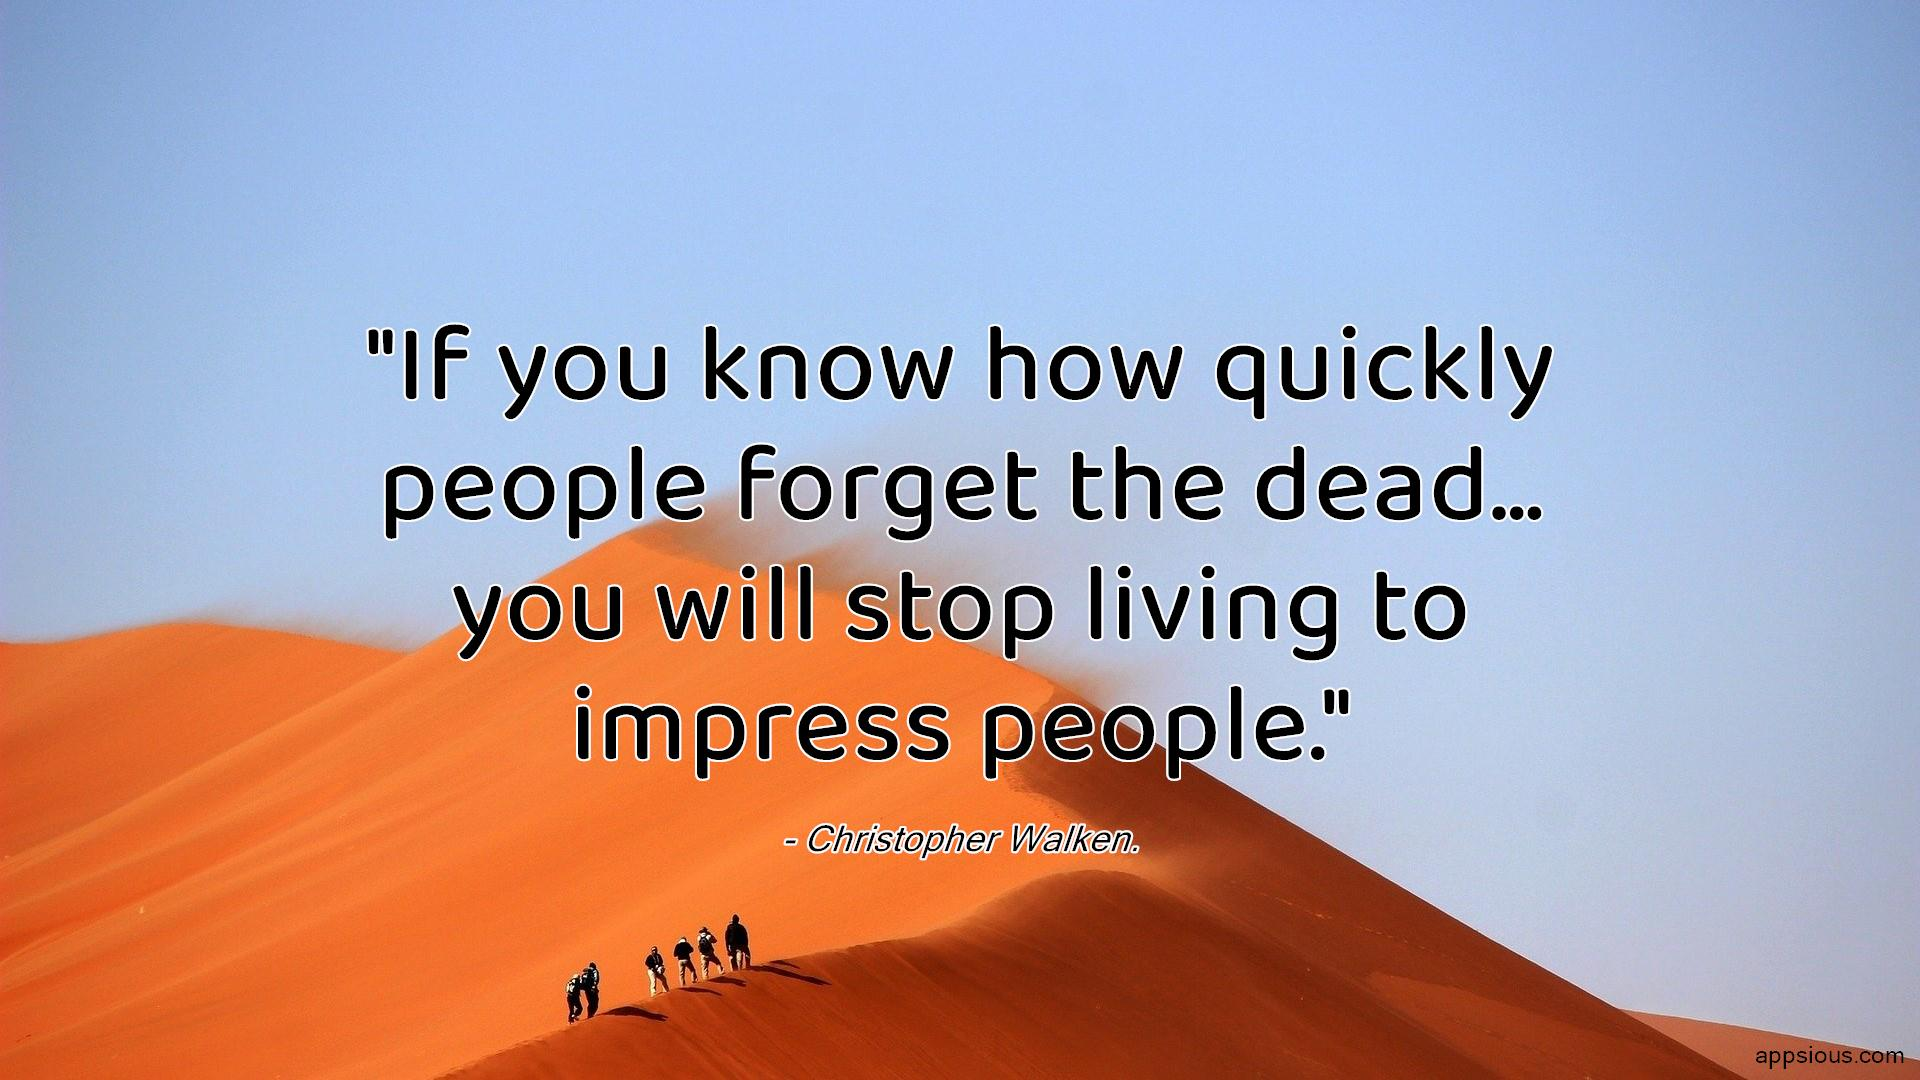 If you know how quickly people forget the dead, You will stop living to impress people.